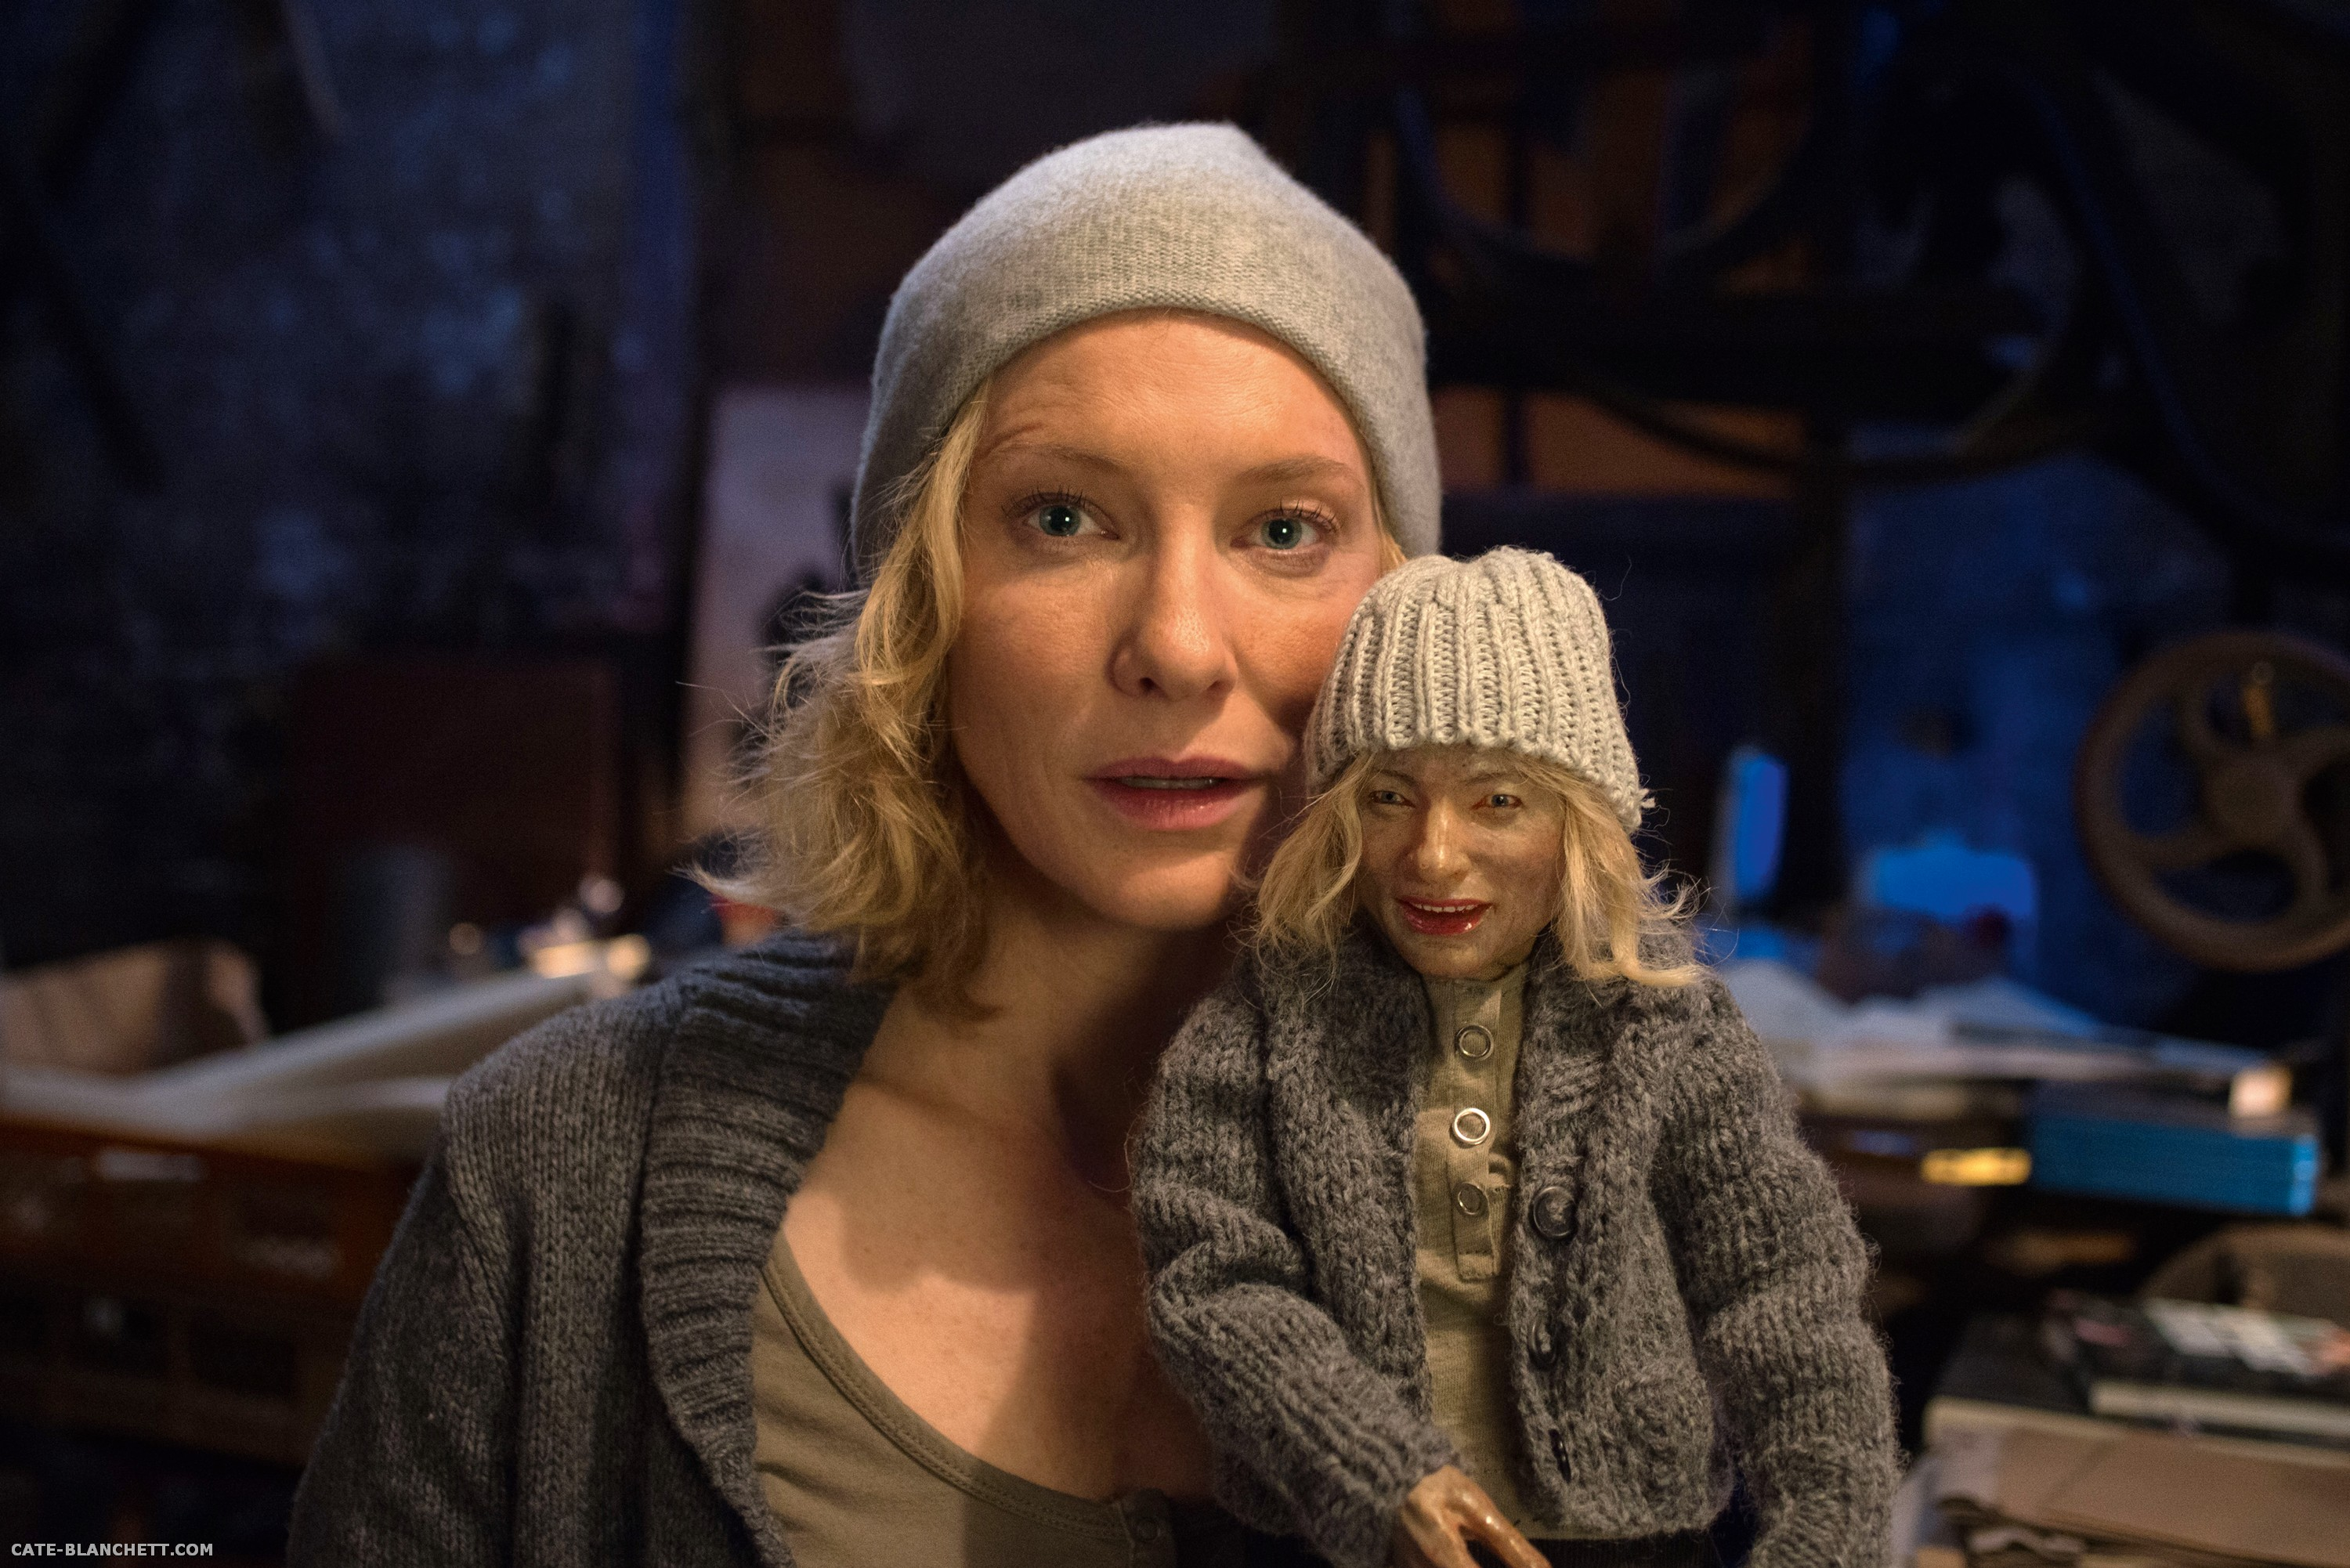 Cate Blanchett on her new film 'Manifesto: Three promotional interviews